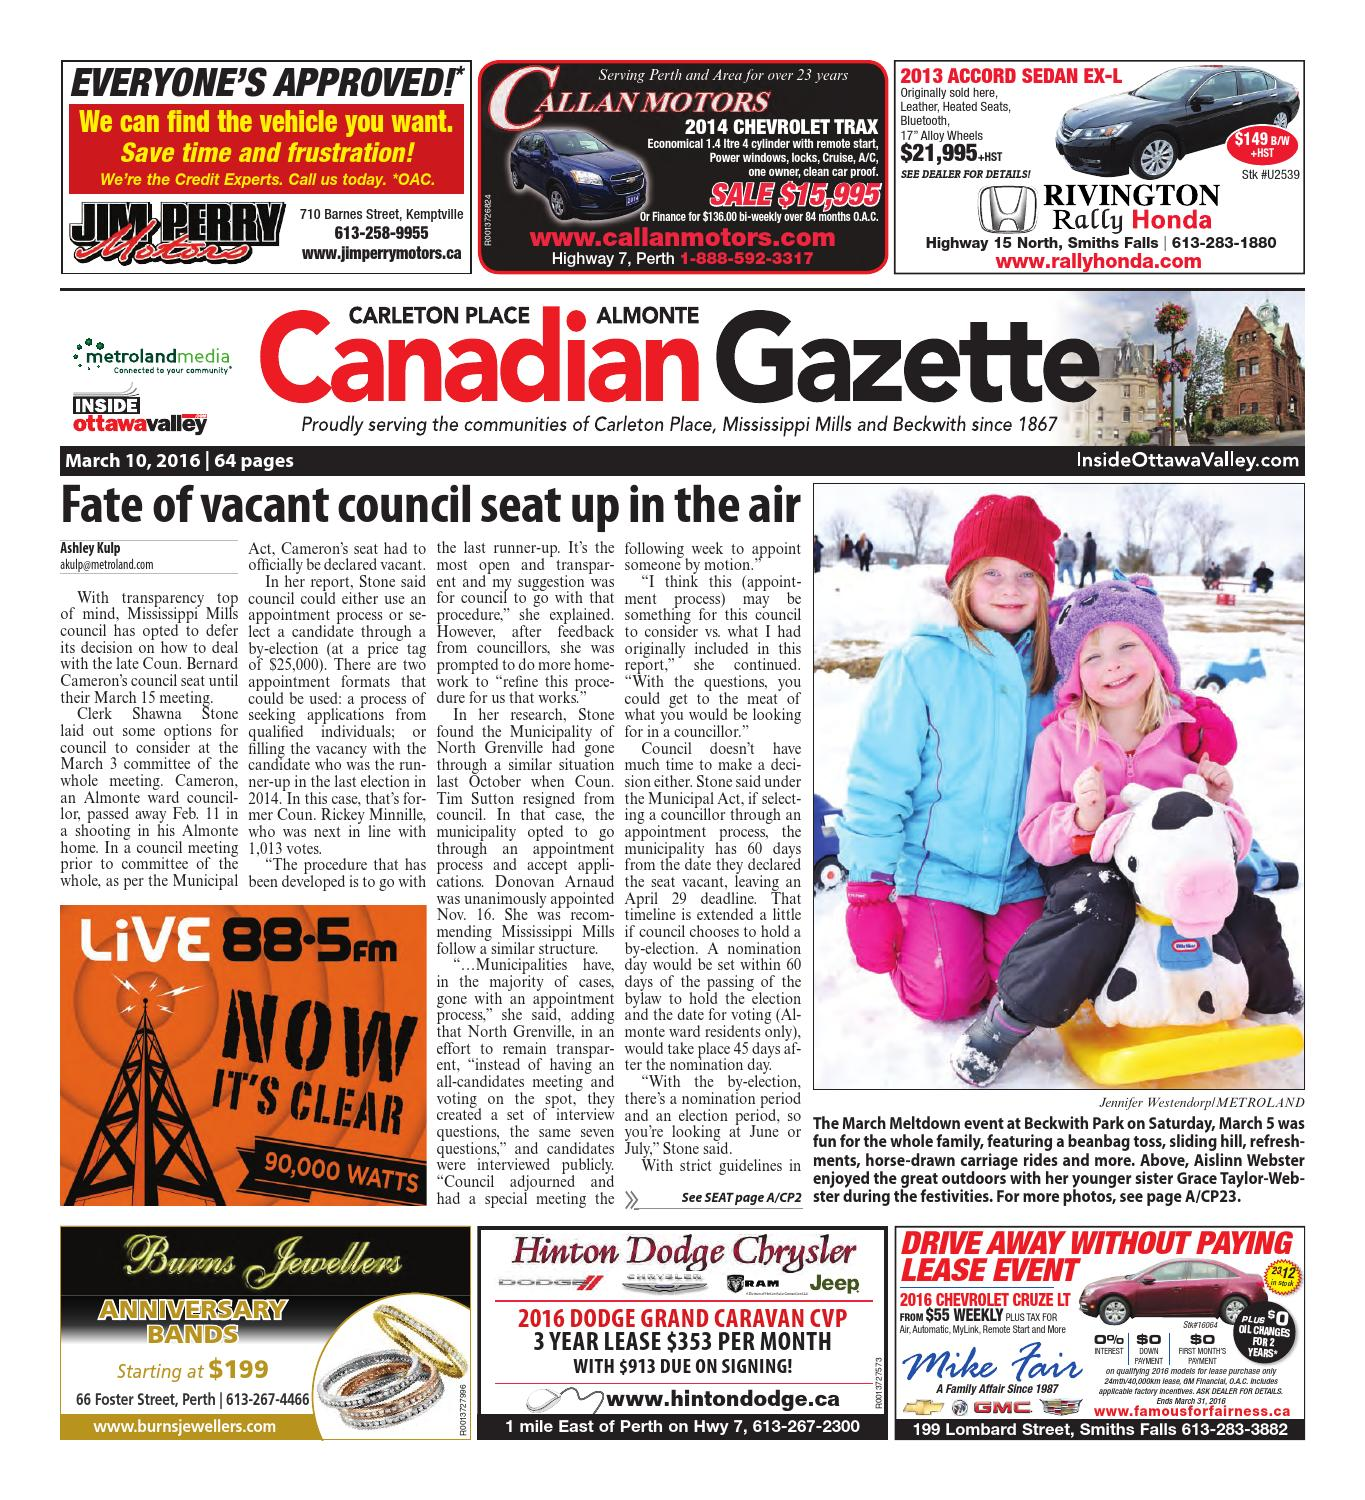 Almontecarletonplace031016 by metroland east almonte carleton almontecarletonplace031016 by metroland east almonte carleton place canadian gazette issuu fandeluxe Choice Image